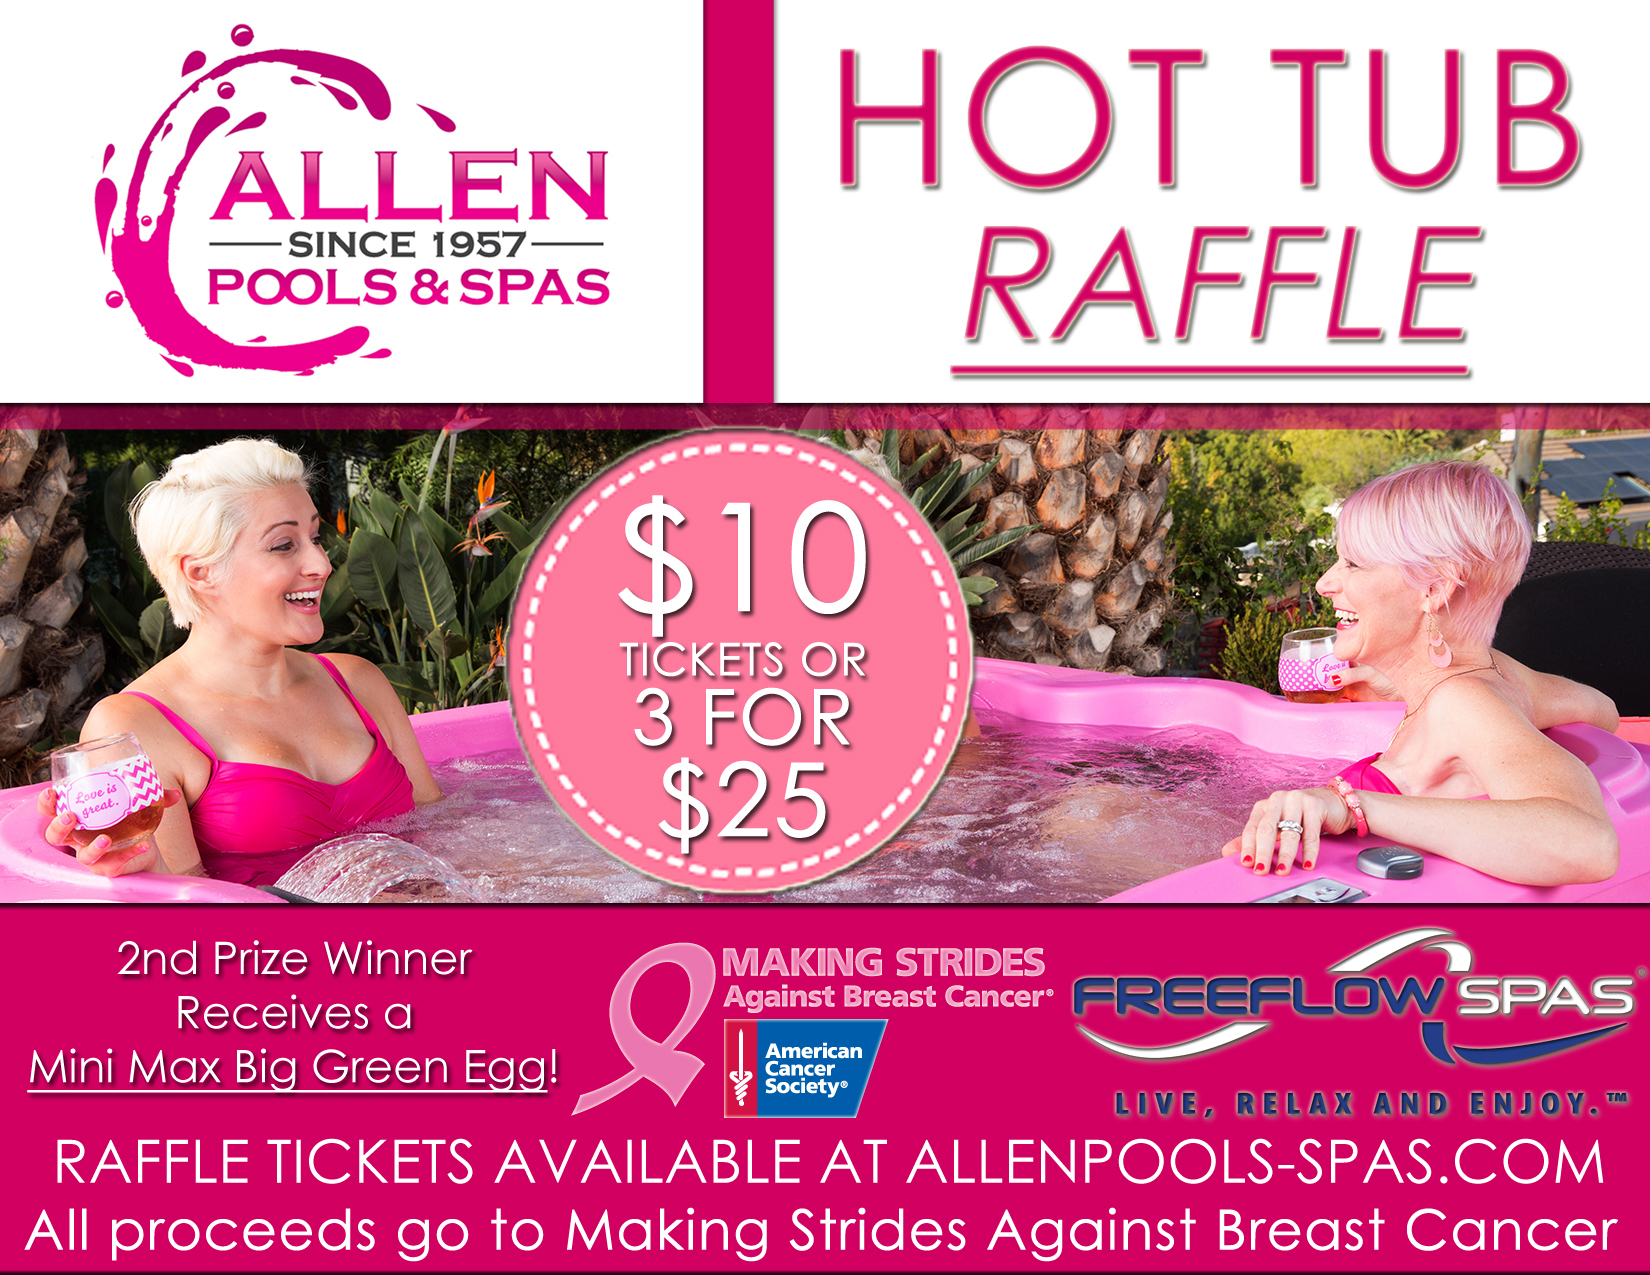 hot tub raffle giveaway